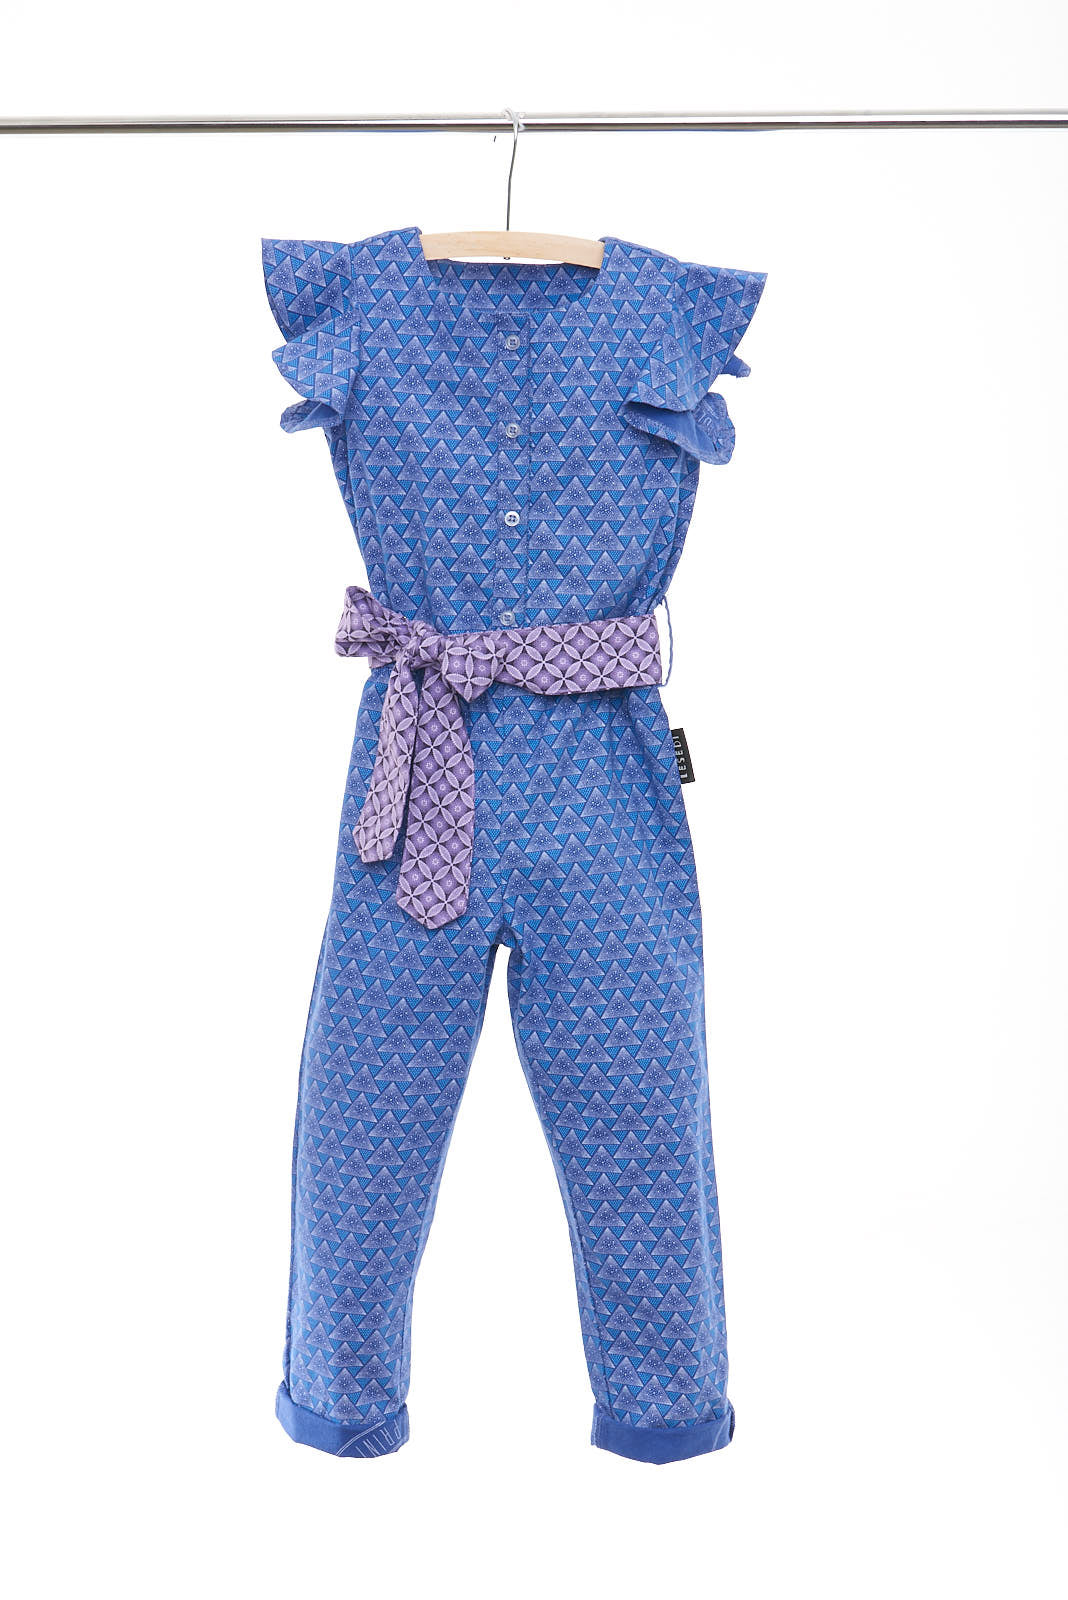 "Girls Short Sleeve Jumpsuit with Ruffles ""Nomthandazo"" - LESEDI"